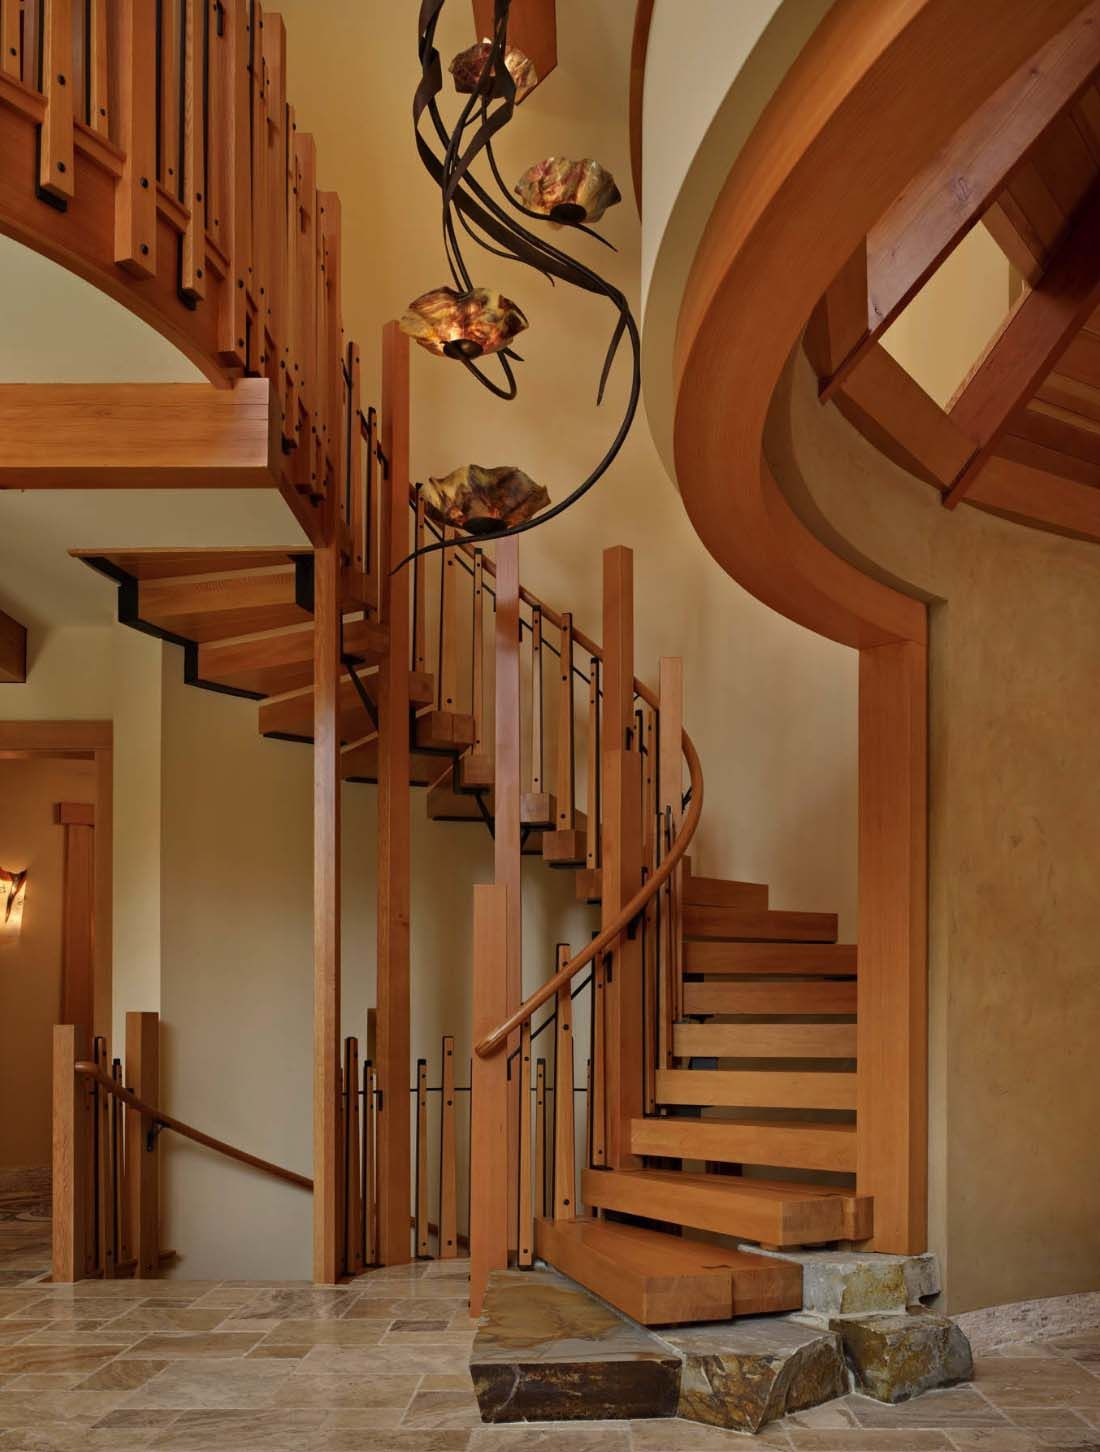 Home interior stairs rustic contemporary home nestled in secluded forests of washington